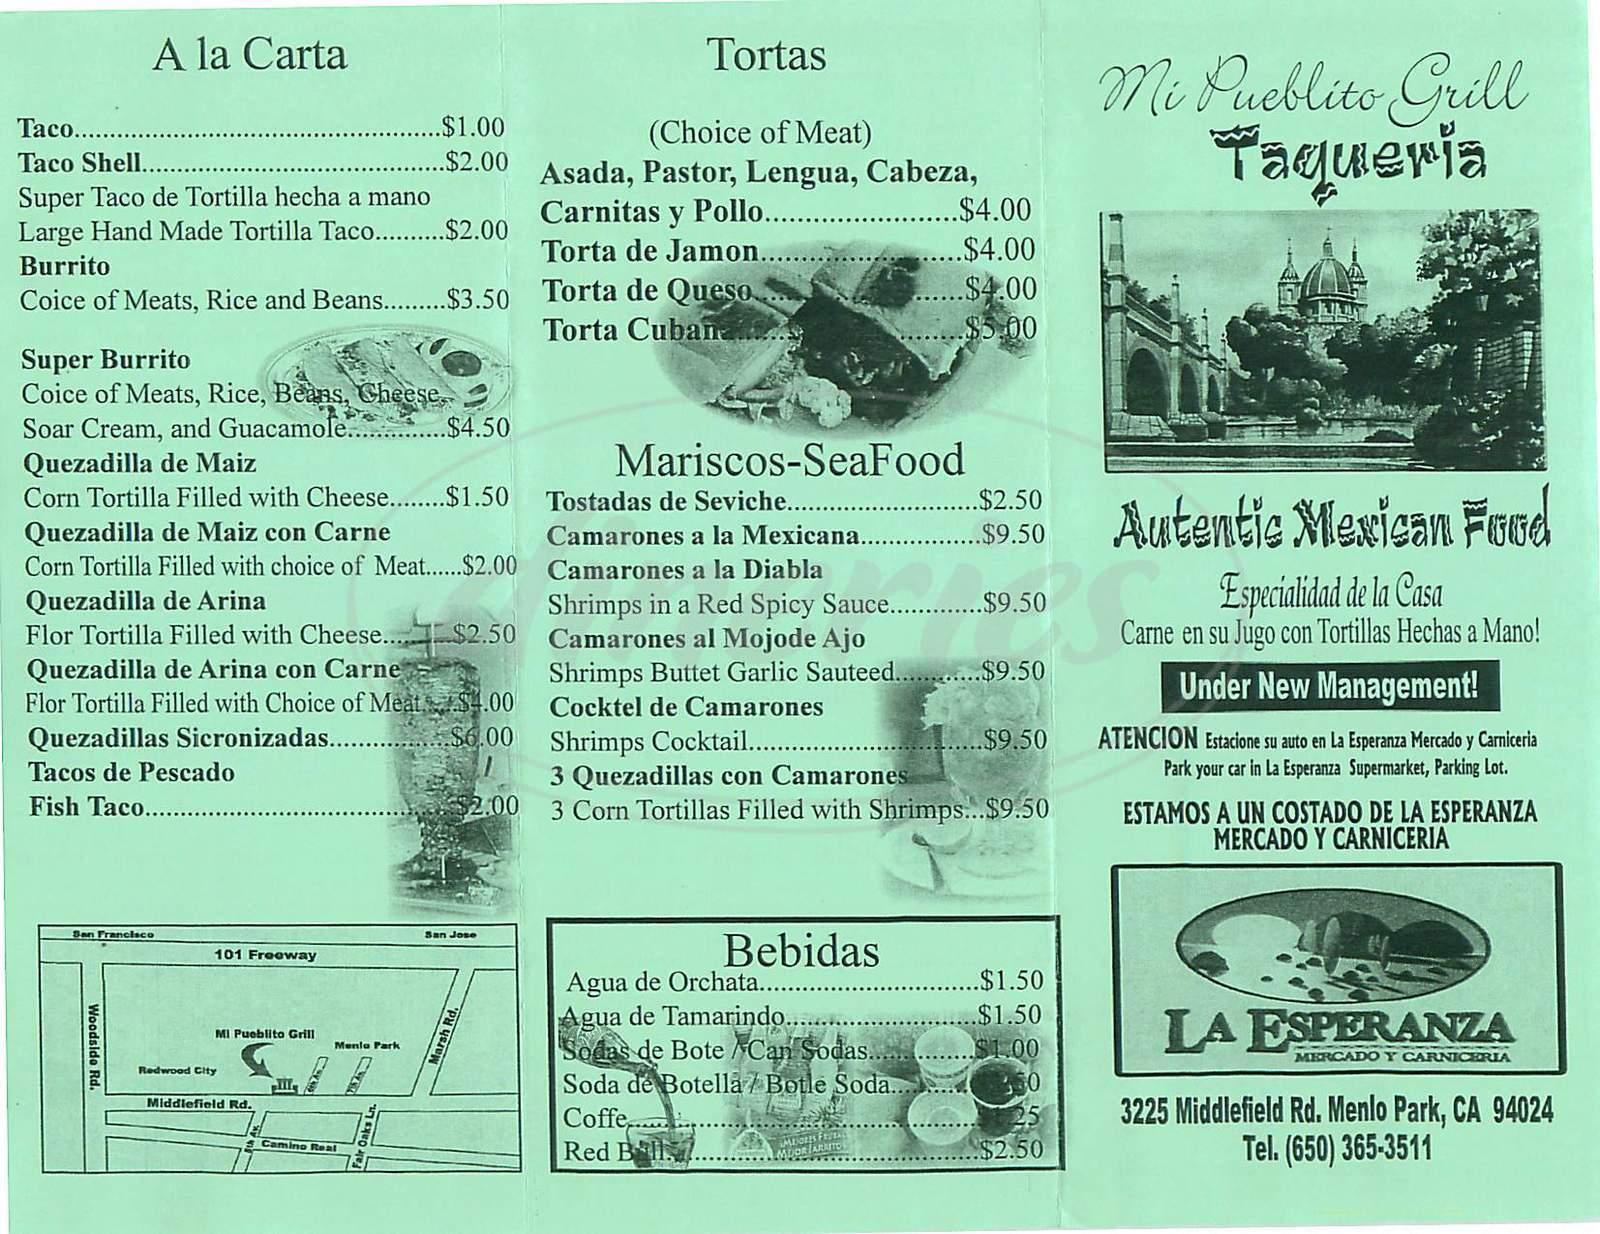 menu for Mi Pueblito Grill